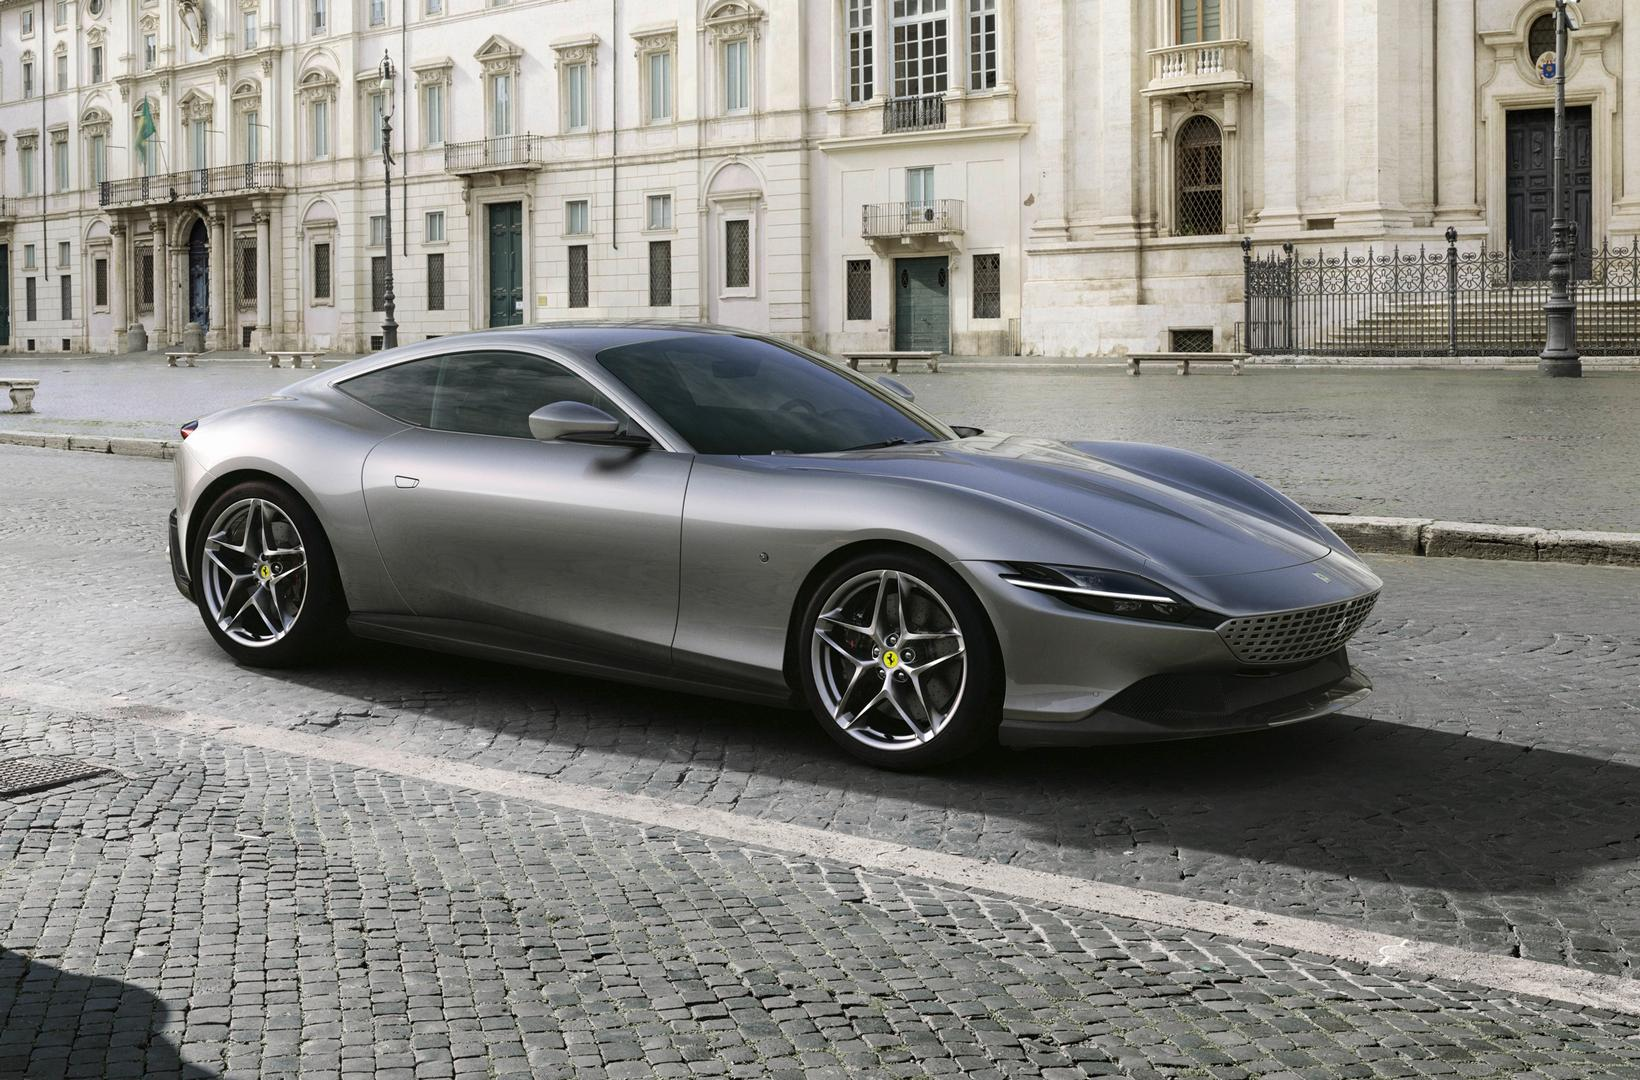 Ferrari Roma: New V8 Coupe Revealed with 620hp